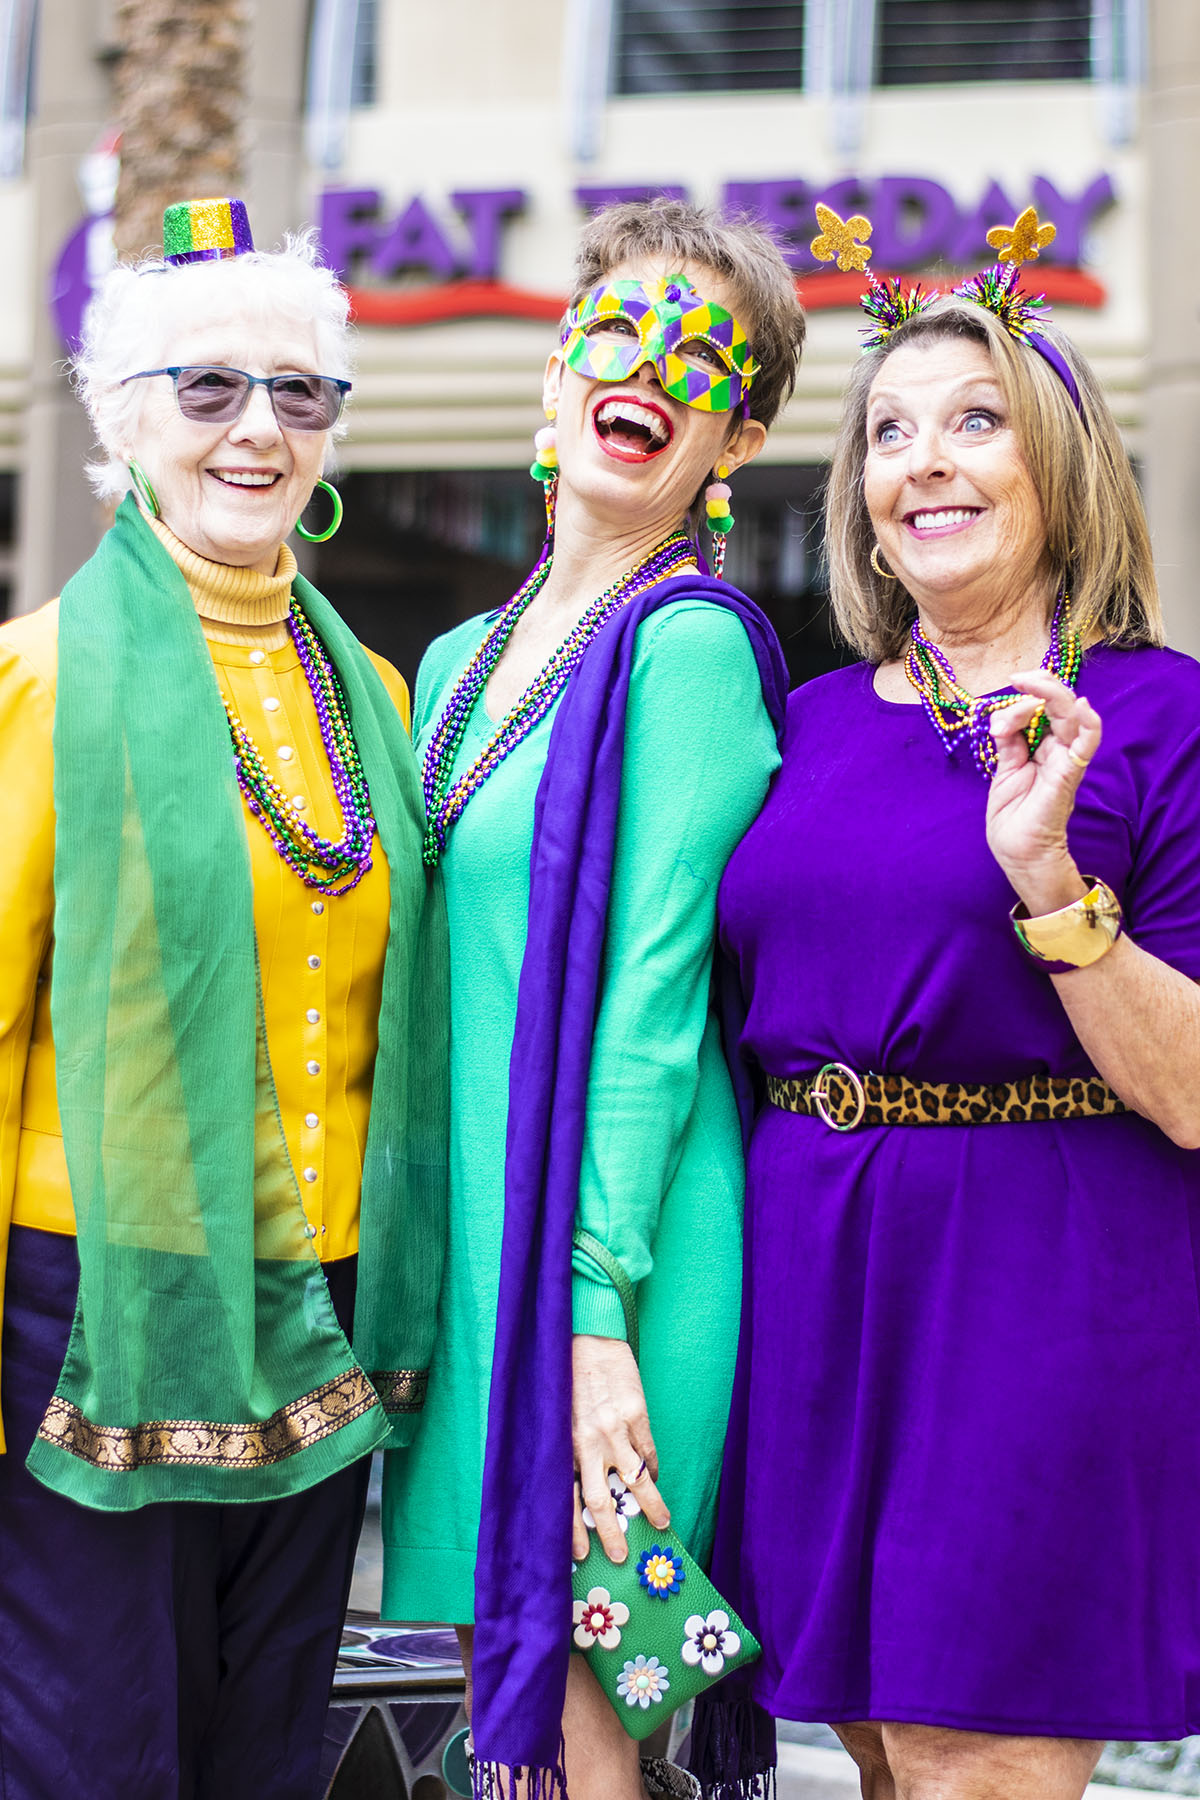 Excellent Outfits Using Mardi Gras Colors